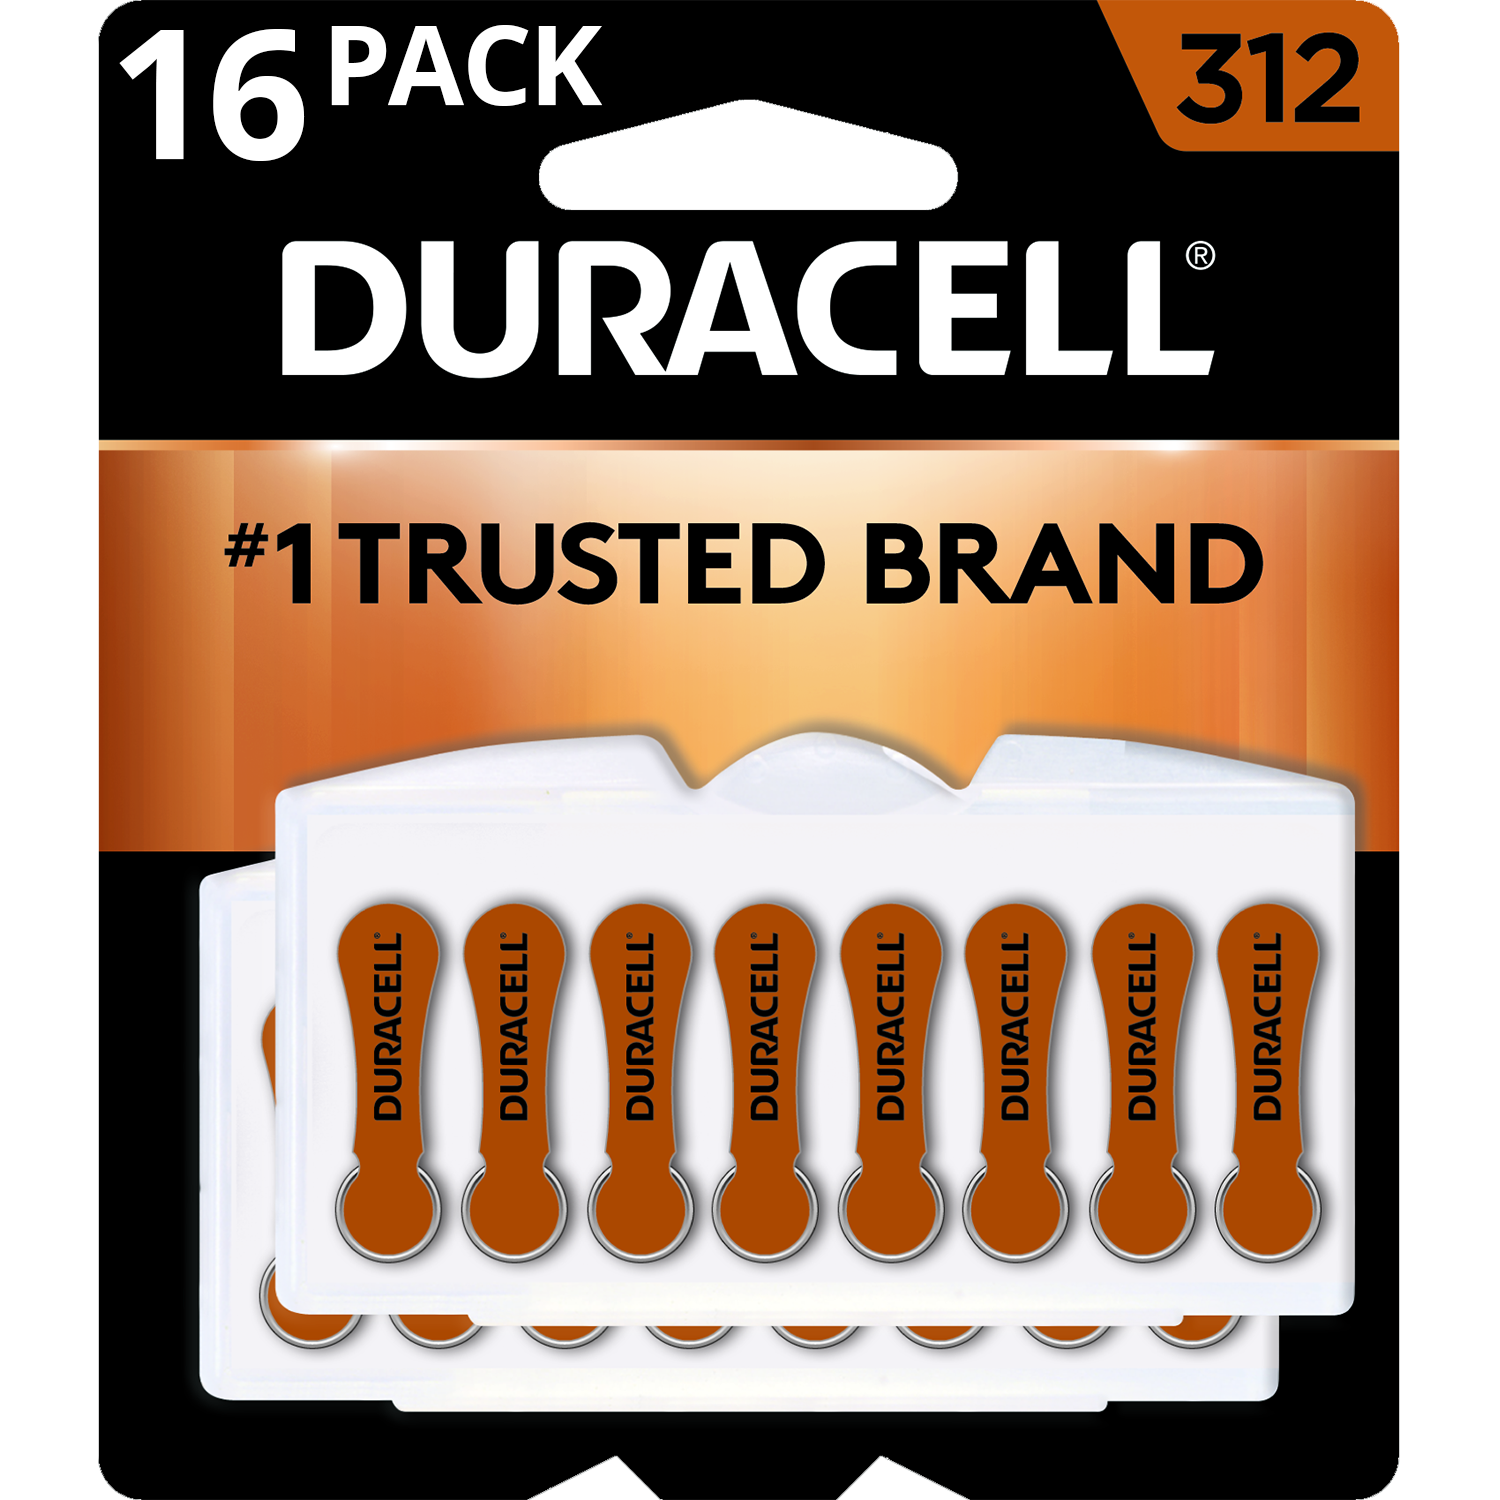 Duracell Hearing Aid Batteries with Easy-Fit Tab, Size 312, 16 Pack